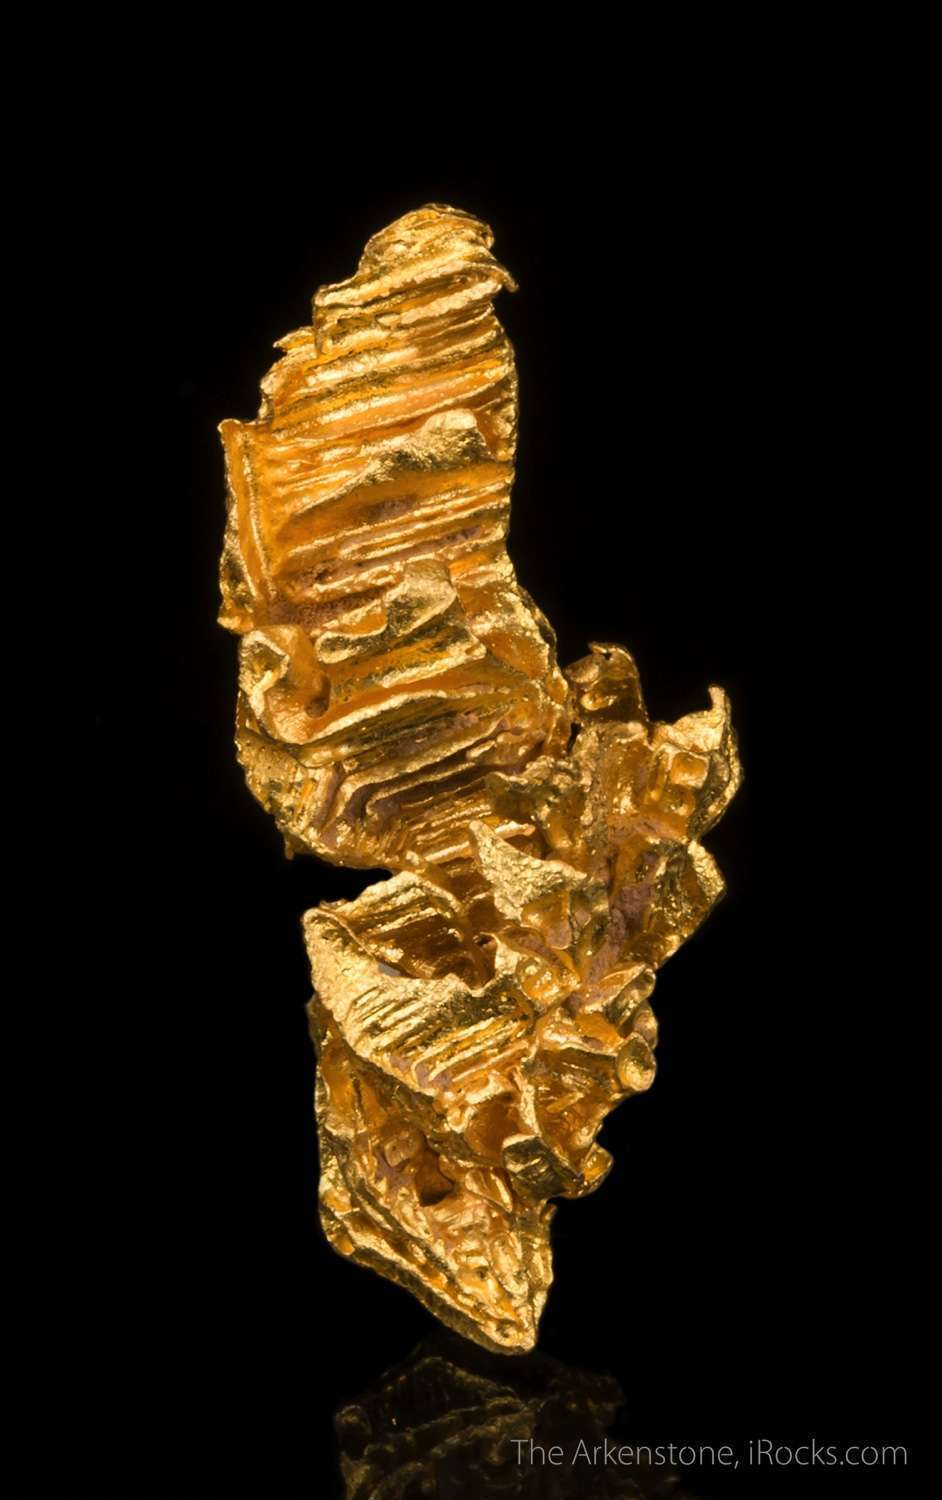 native gold nugget mau07 ballarat area australia